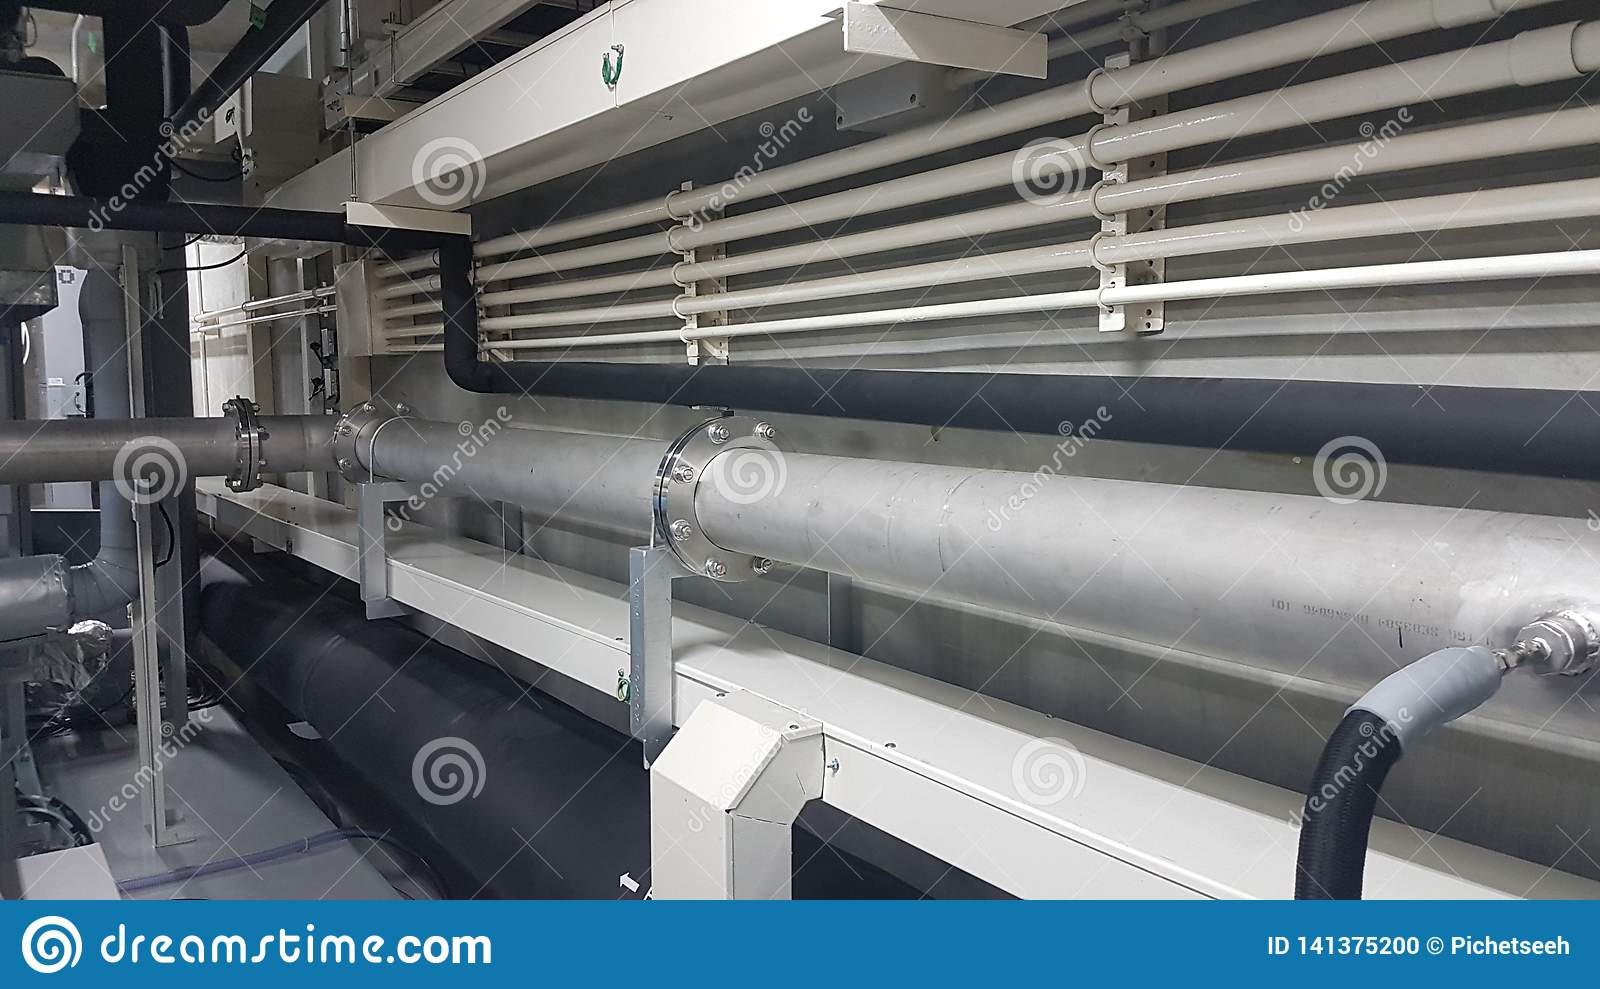 Pipe line system and conduit and cable duct for the gas system and electrical systems